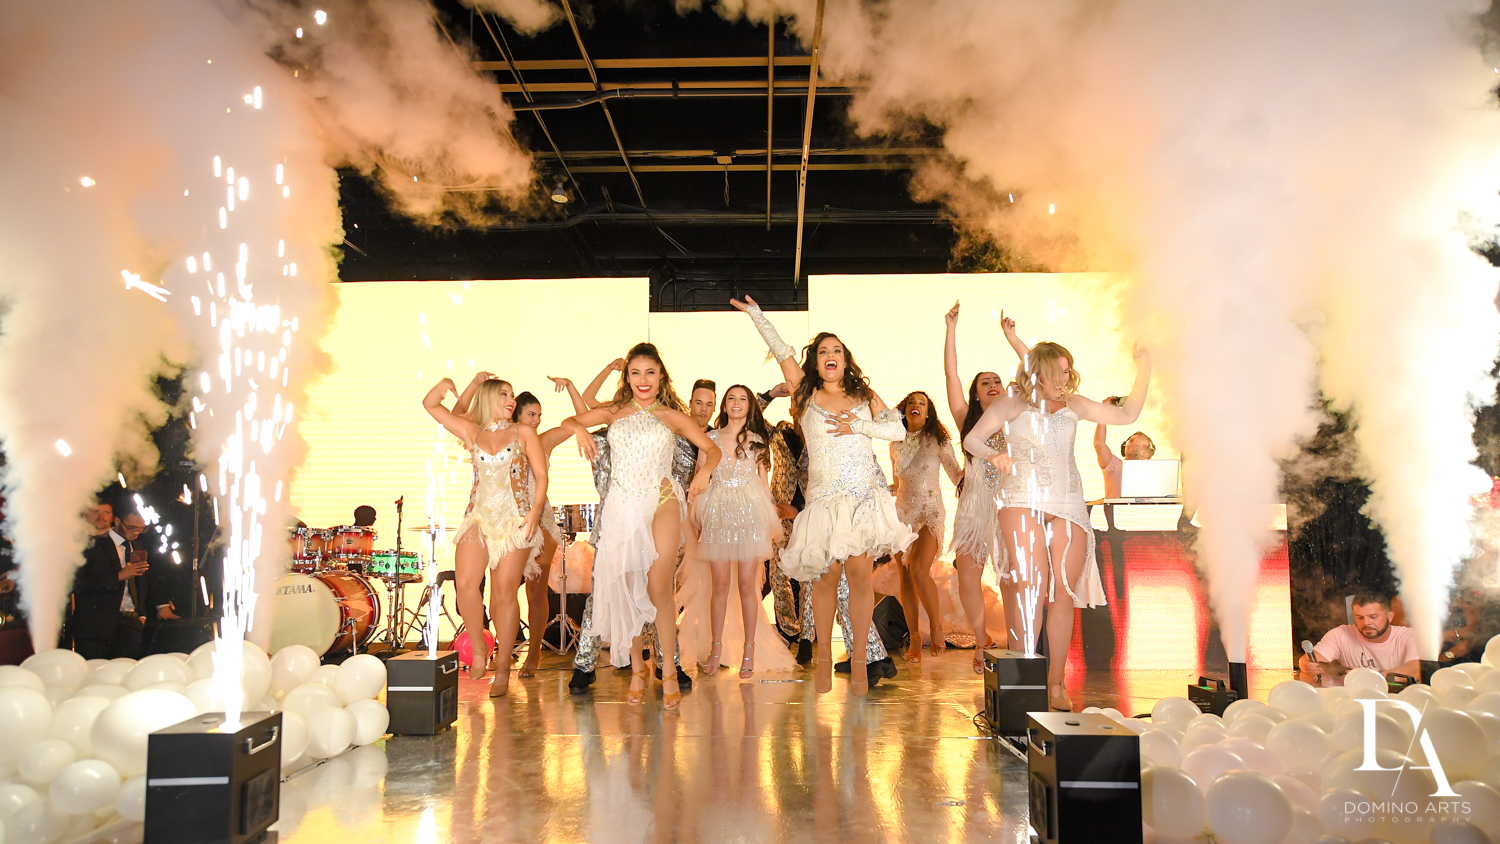 show at Fashion Theme Bat Mitzvah at Gallery of Amazing Things by Domino Arts Photography